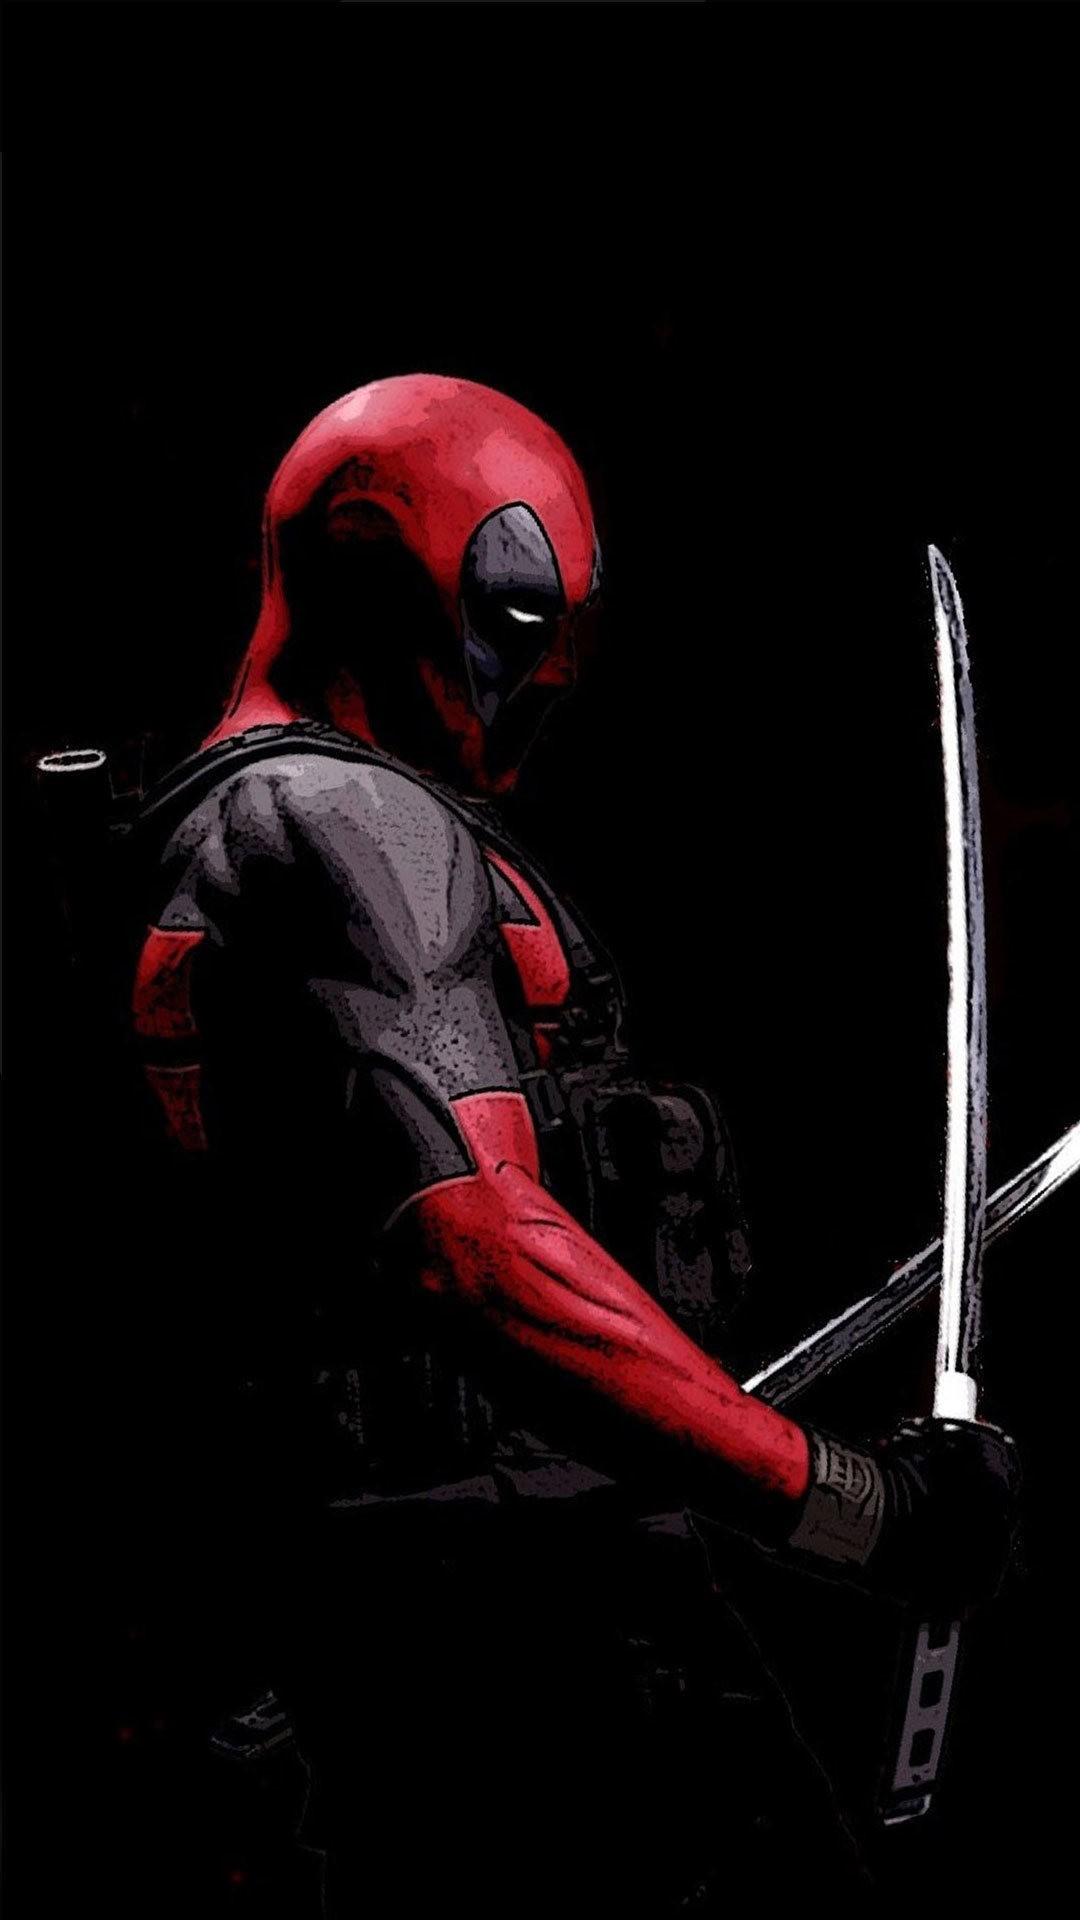 deadpool with his swords